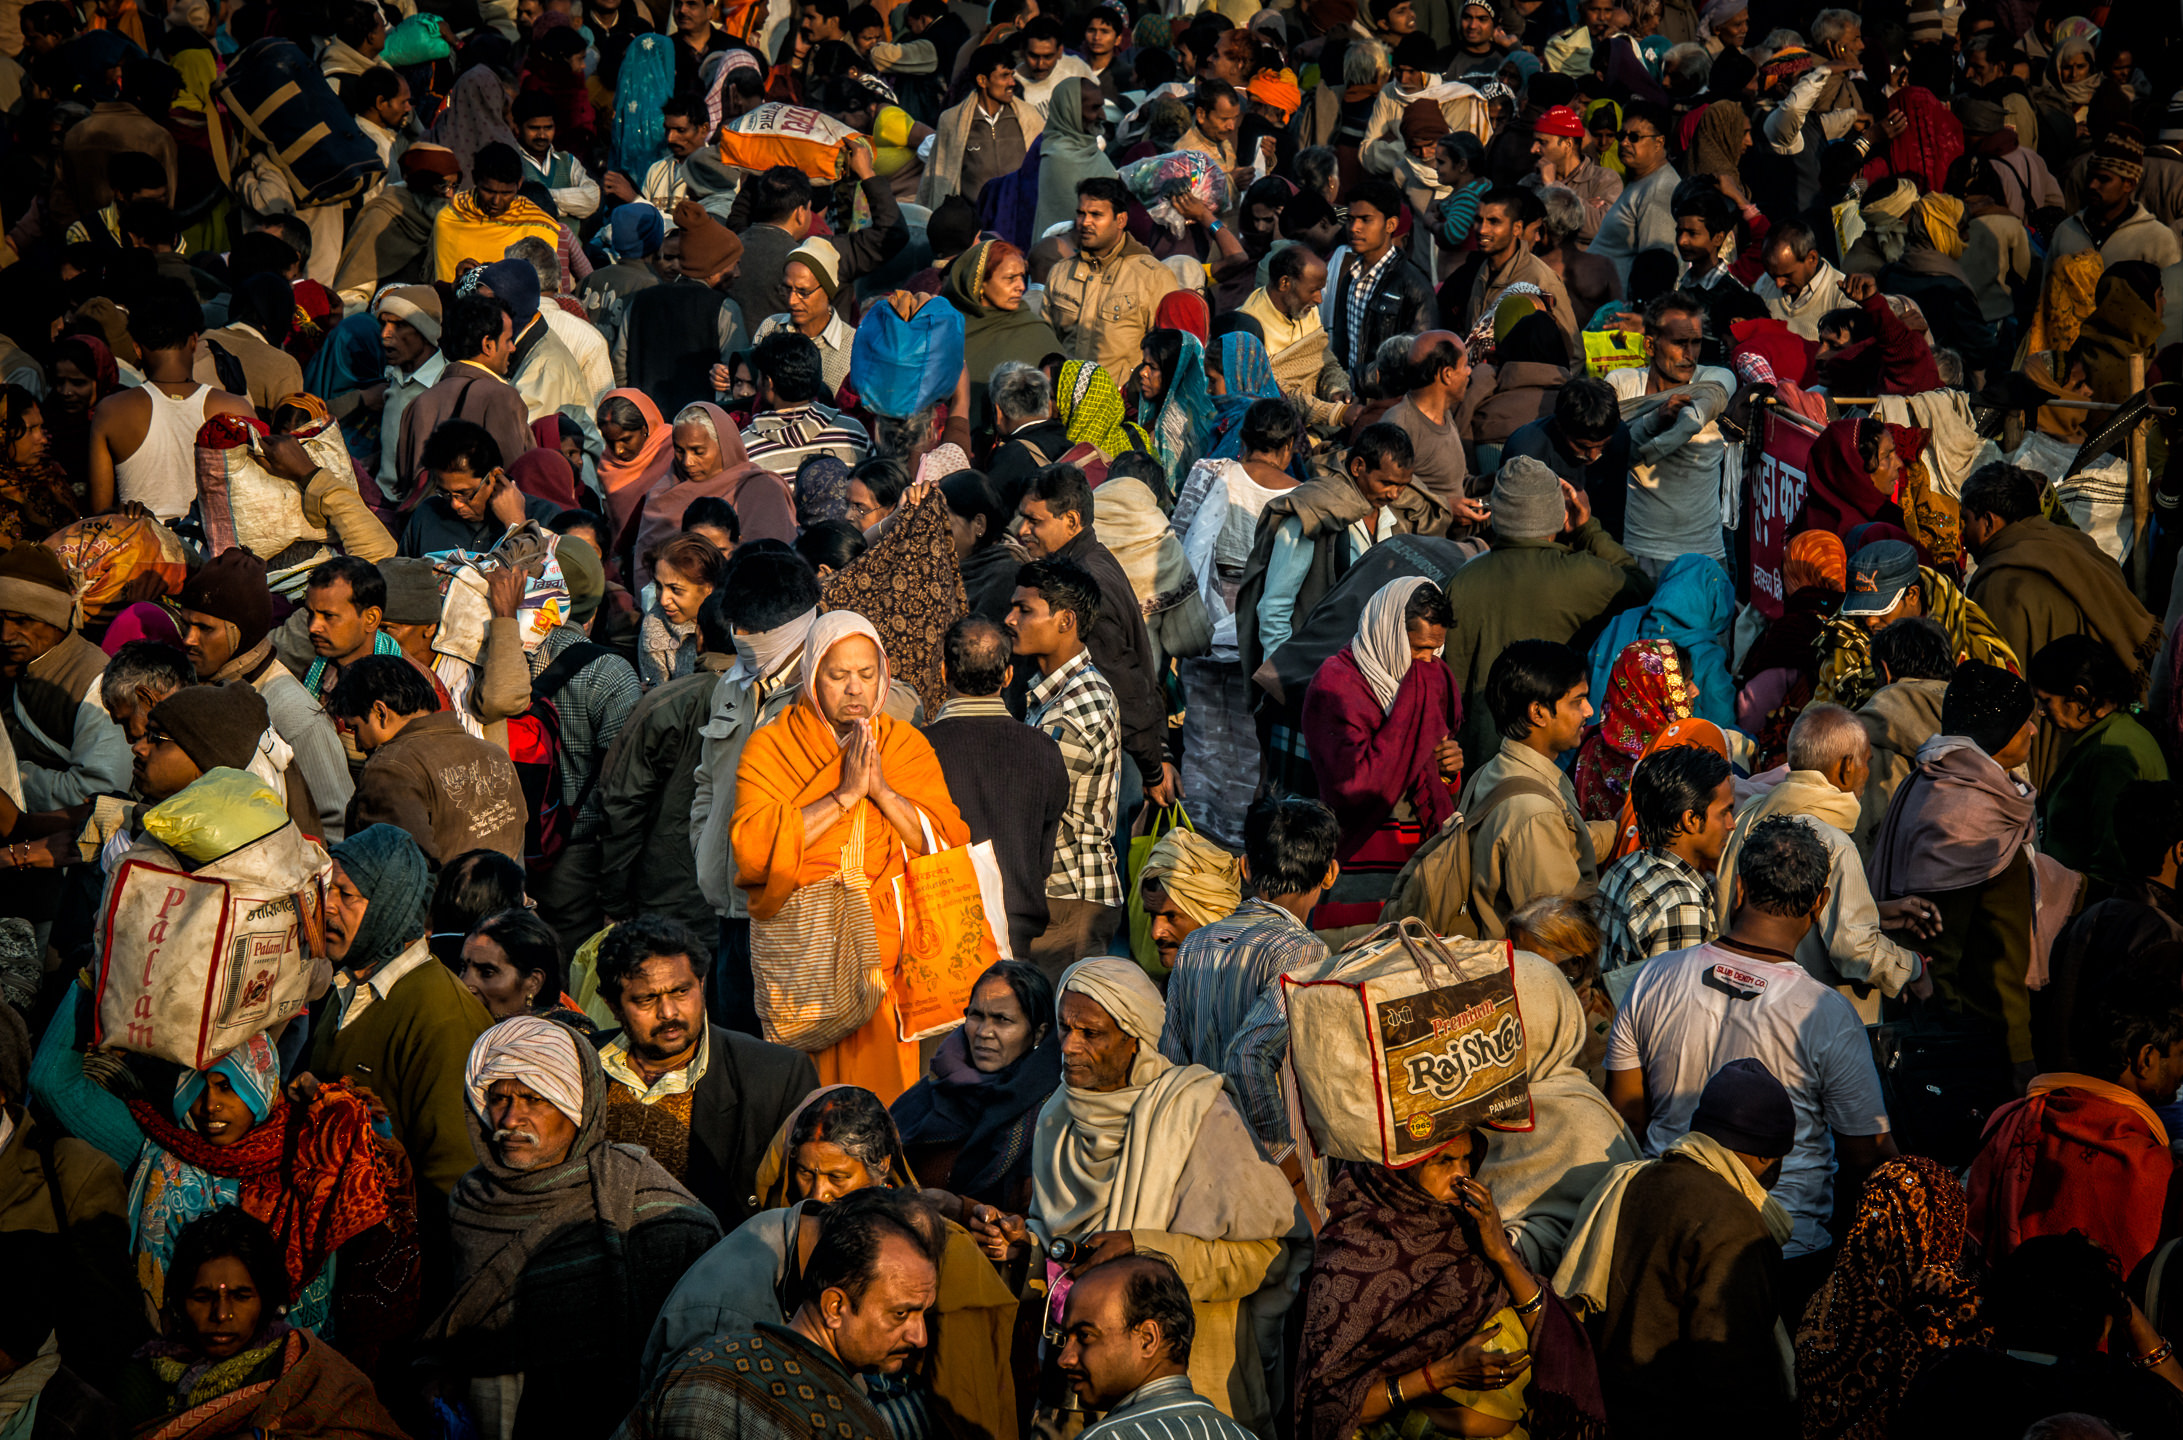 [2013-02-10]_India_Day14_Kumbh_6_[30m]_(0526)_NIKON_D800-Edit[1].jpg